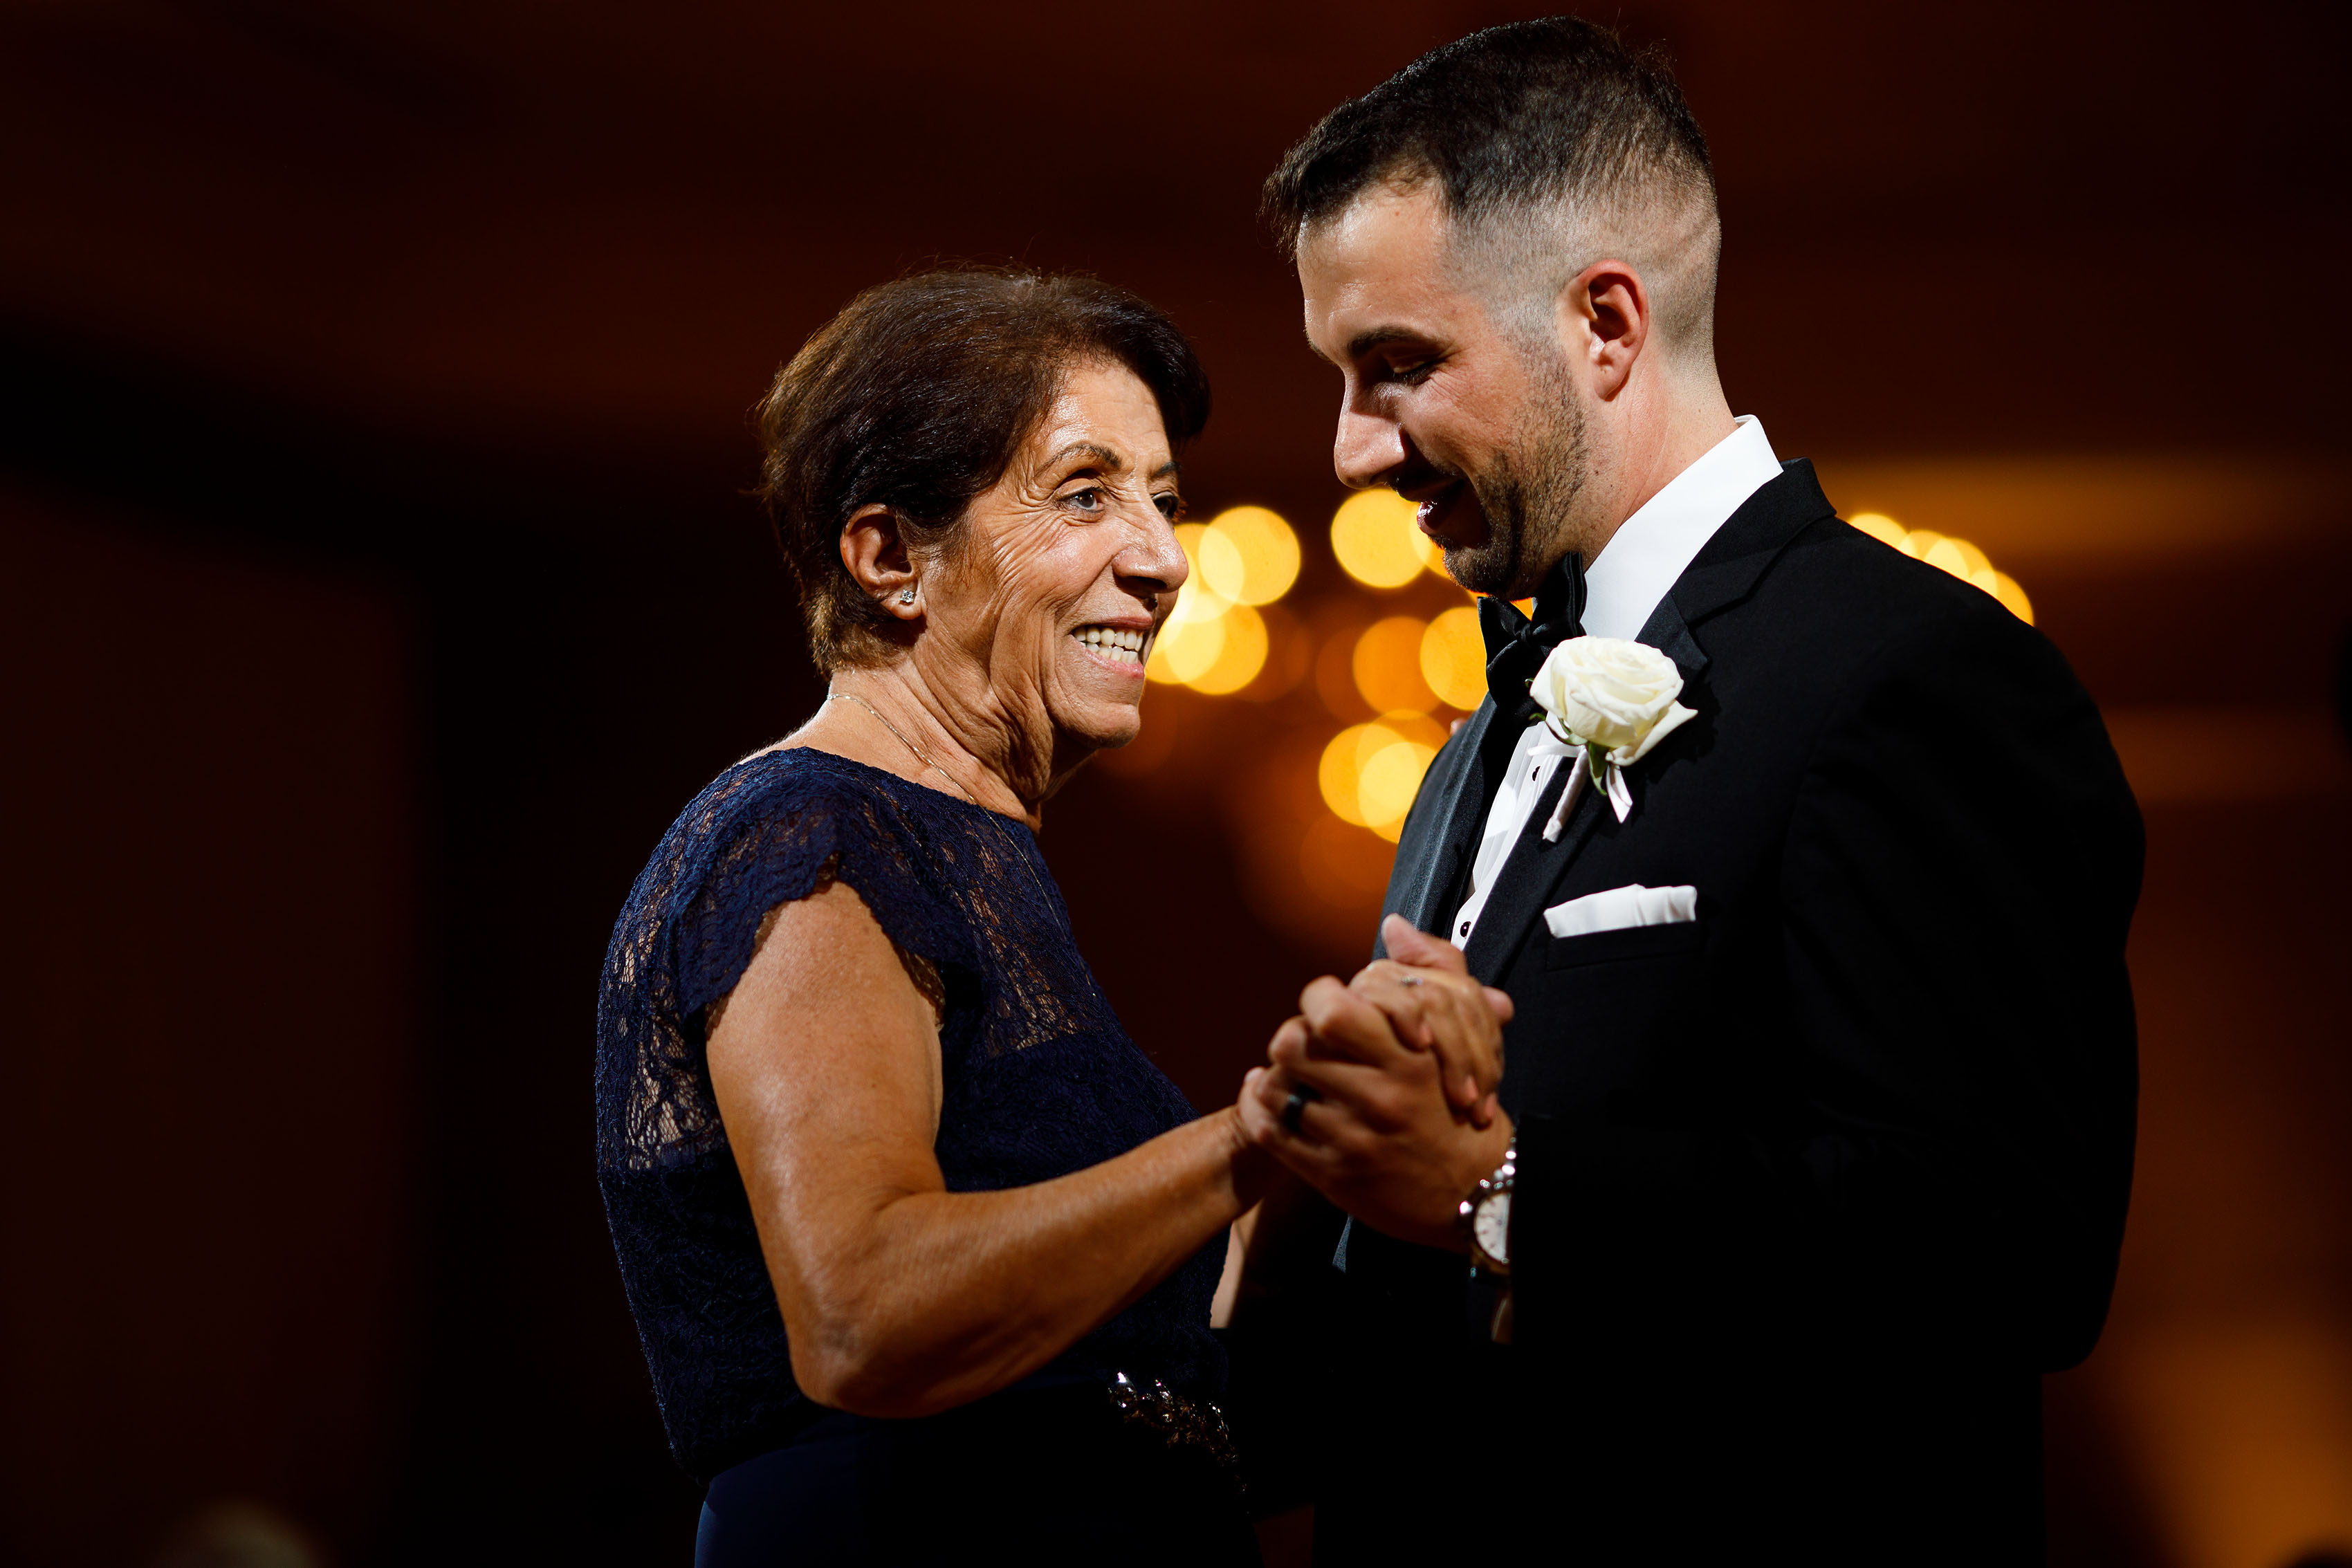 Demetris dances with his mother